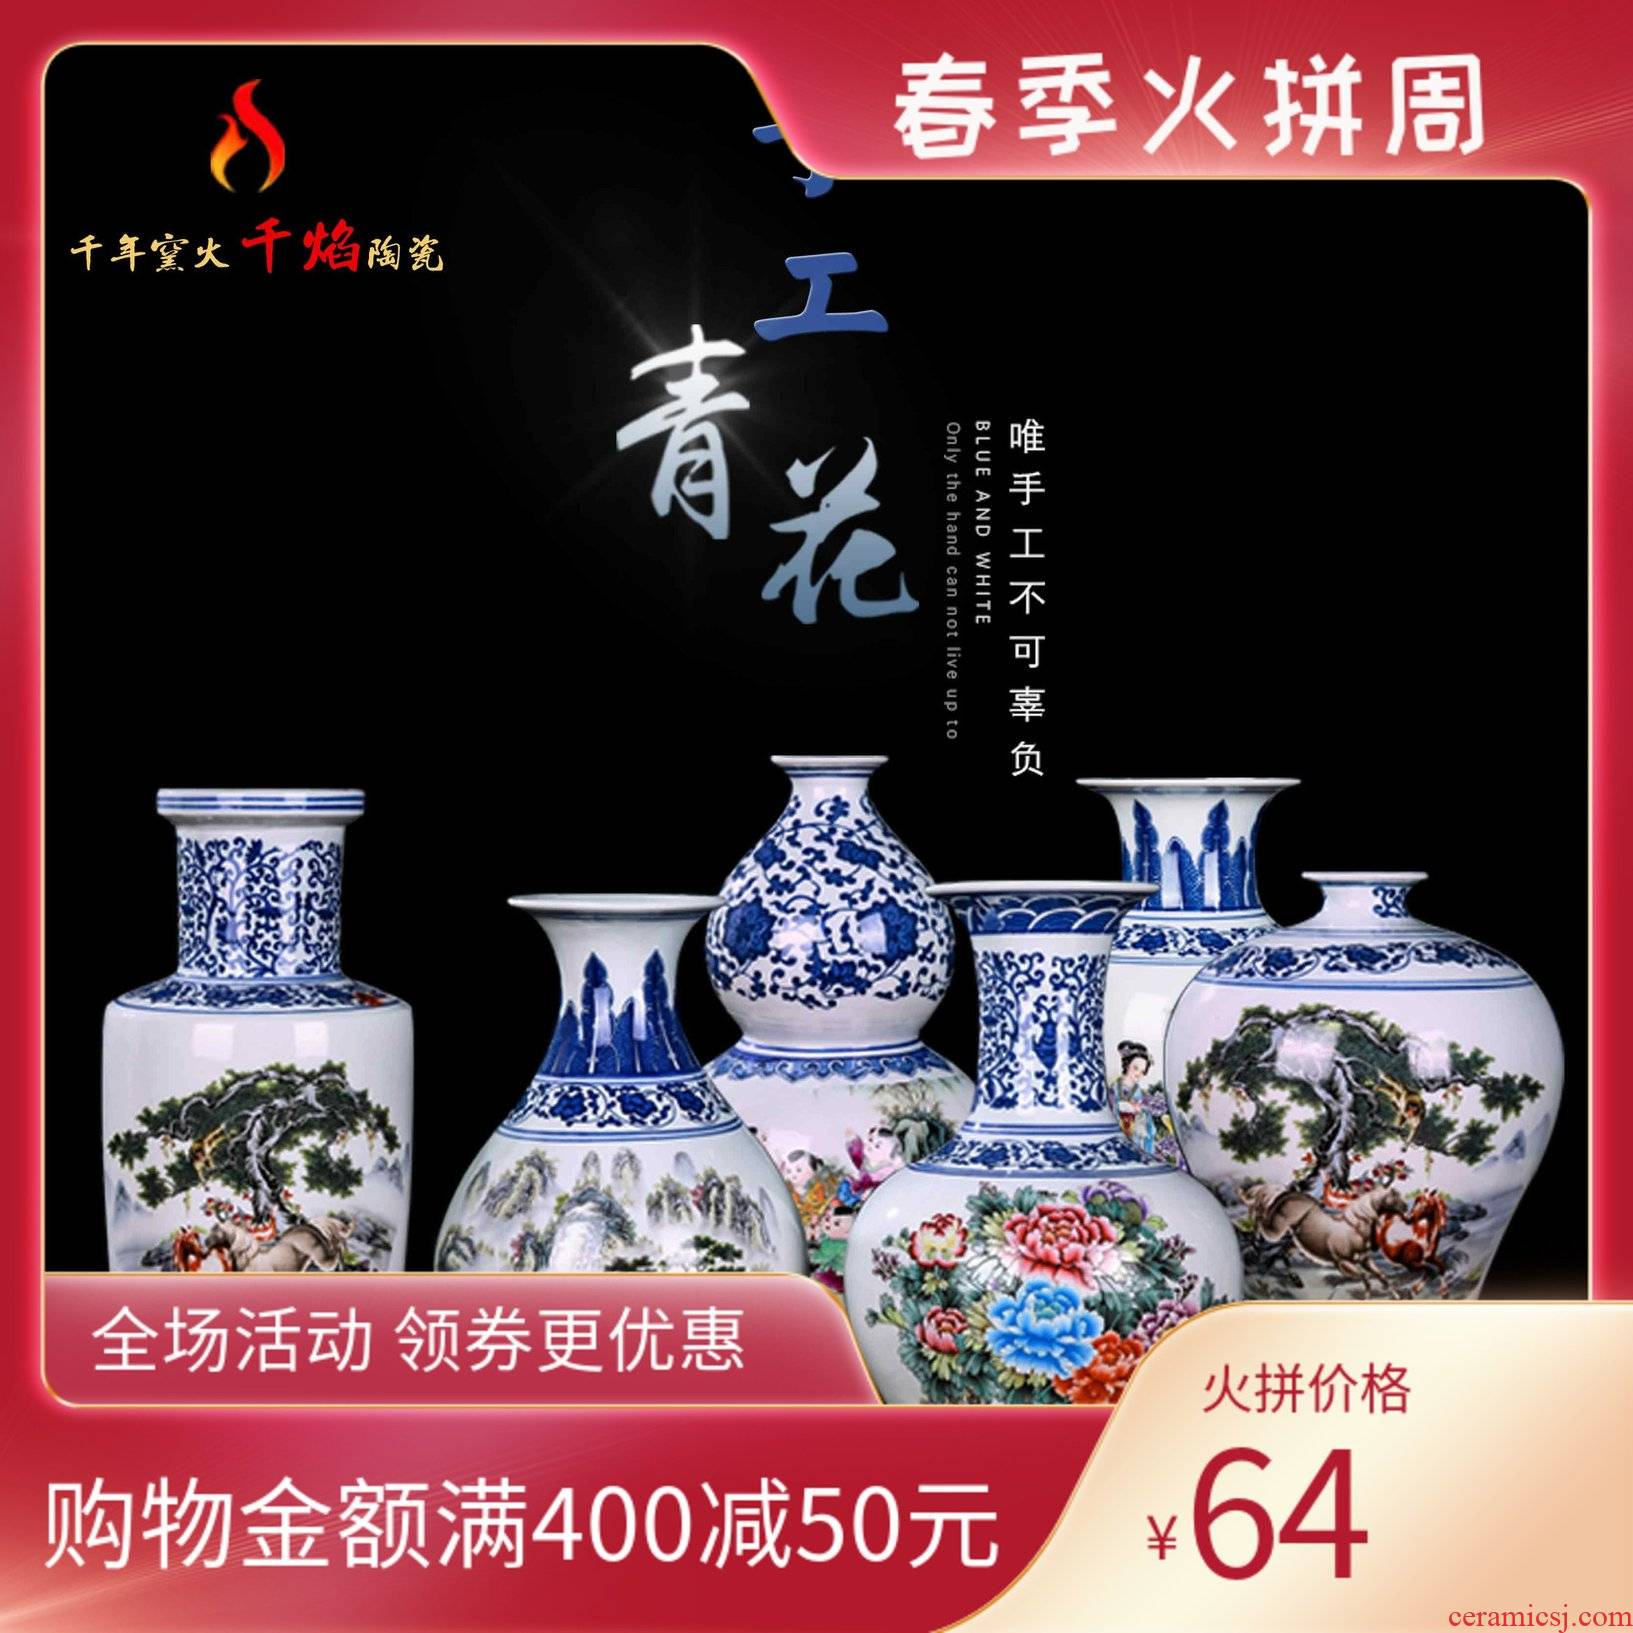 Blue and white porcelain of jingdezhen ceramics vase antique Chinese style household act the role ofing is tasted TV ark, flower arranging, the sitting room porch place